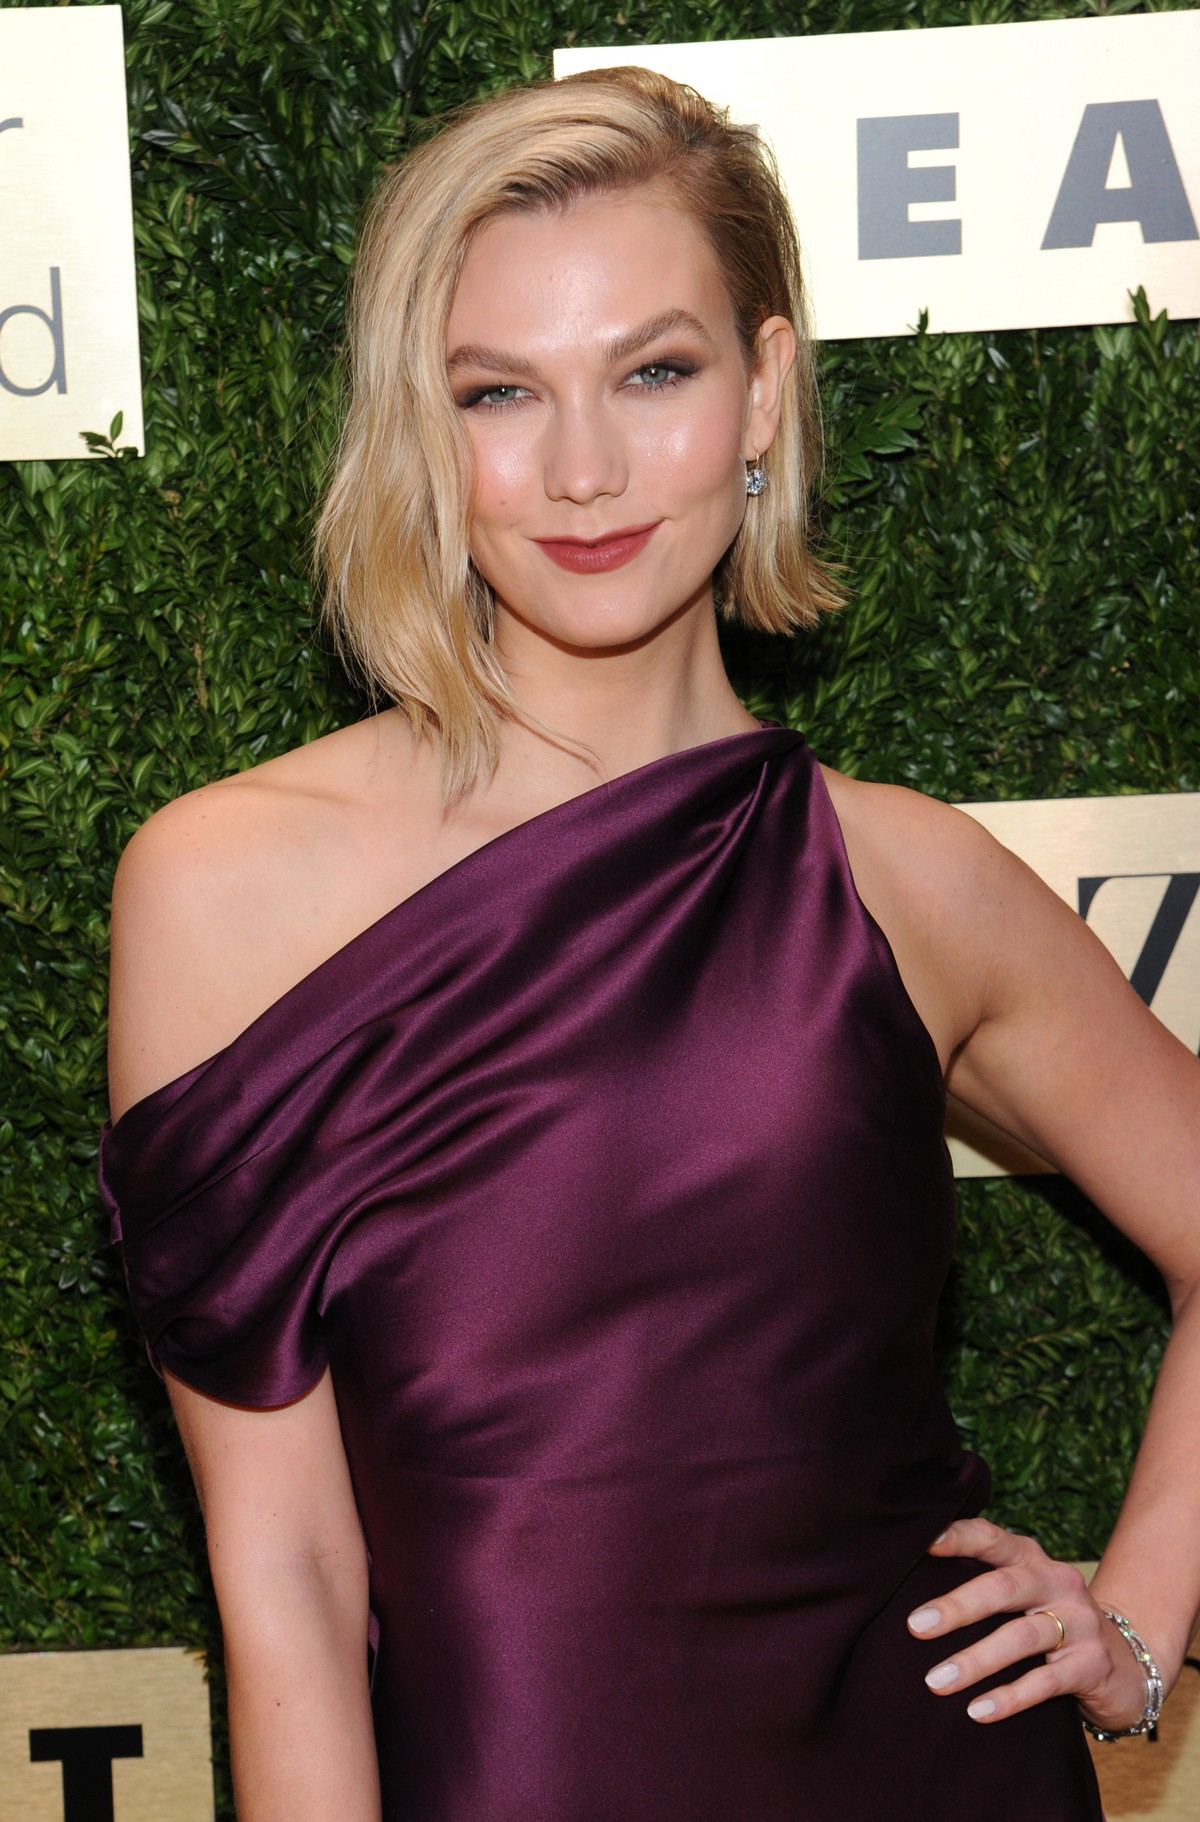 Karlie Kloss attends Lincoln Center Corporate Fashion Fund Gala in New York City 2019/11/18 5